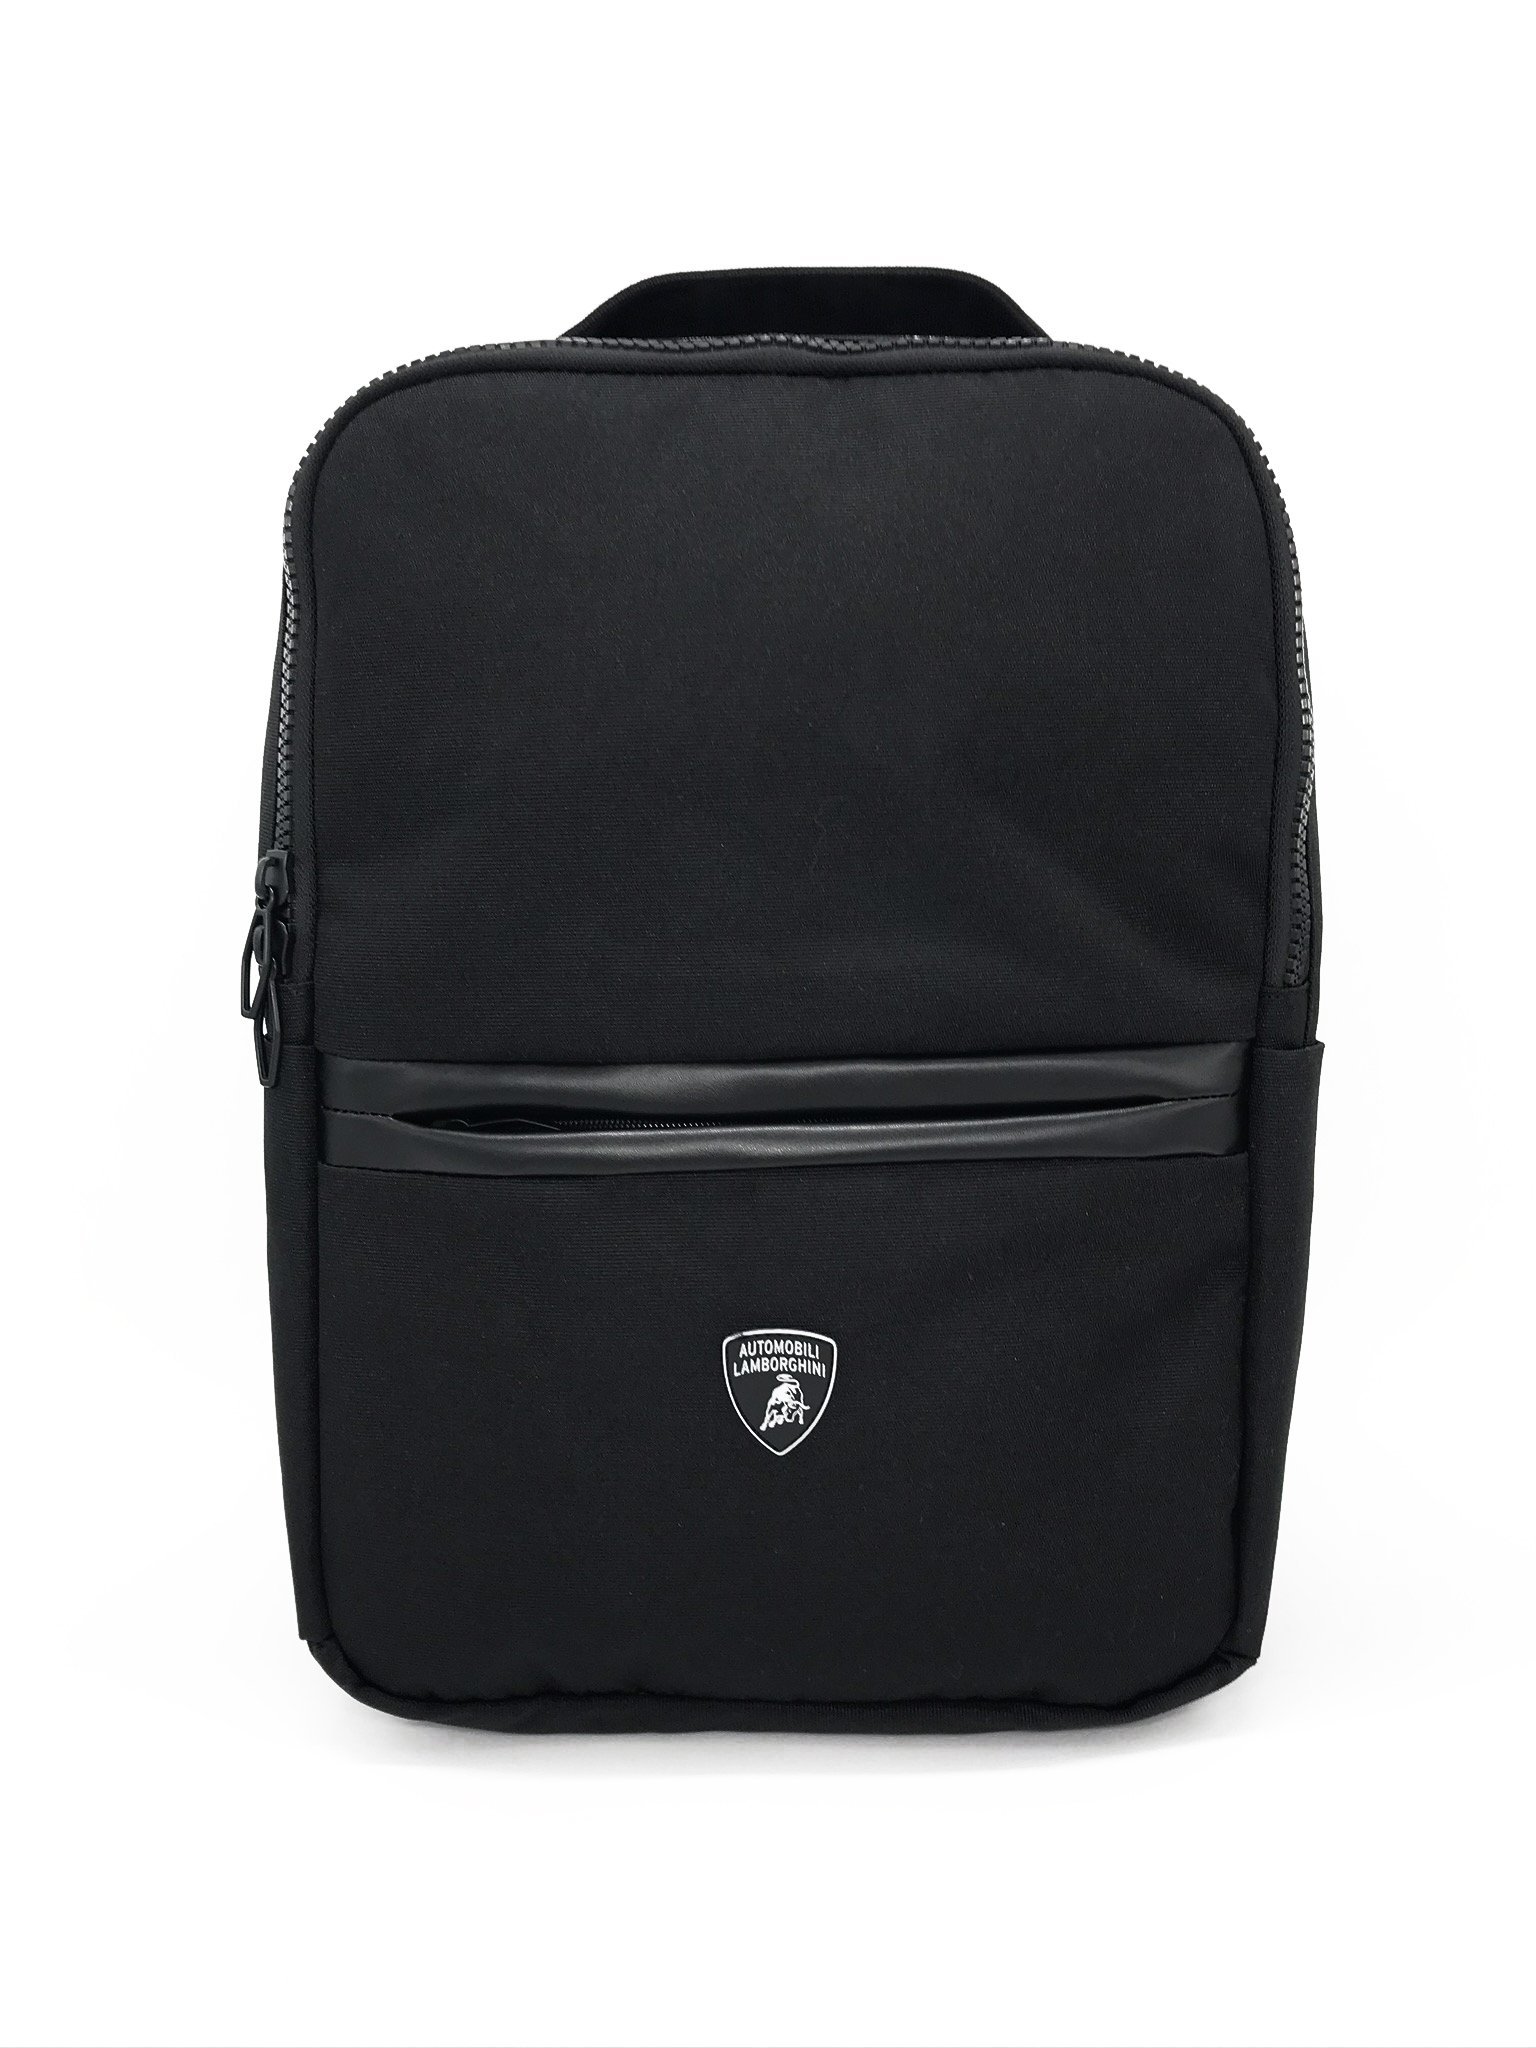 Рюкзак Lamborghini Essential, black